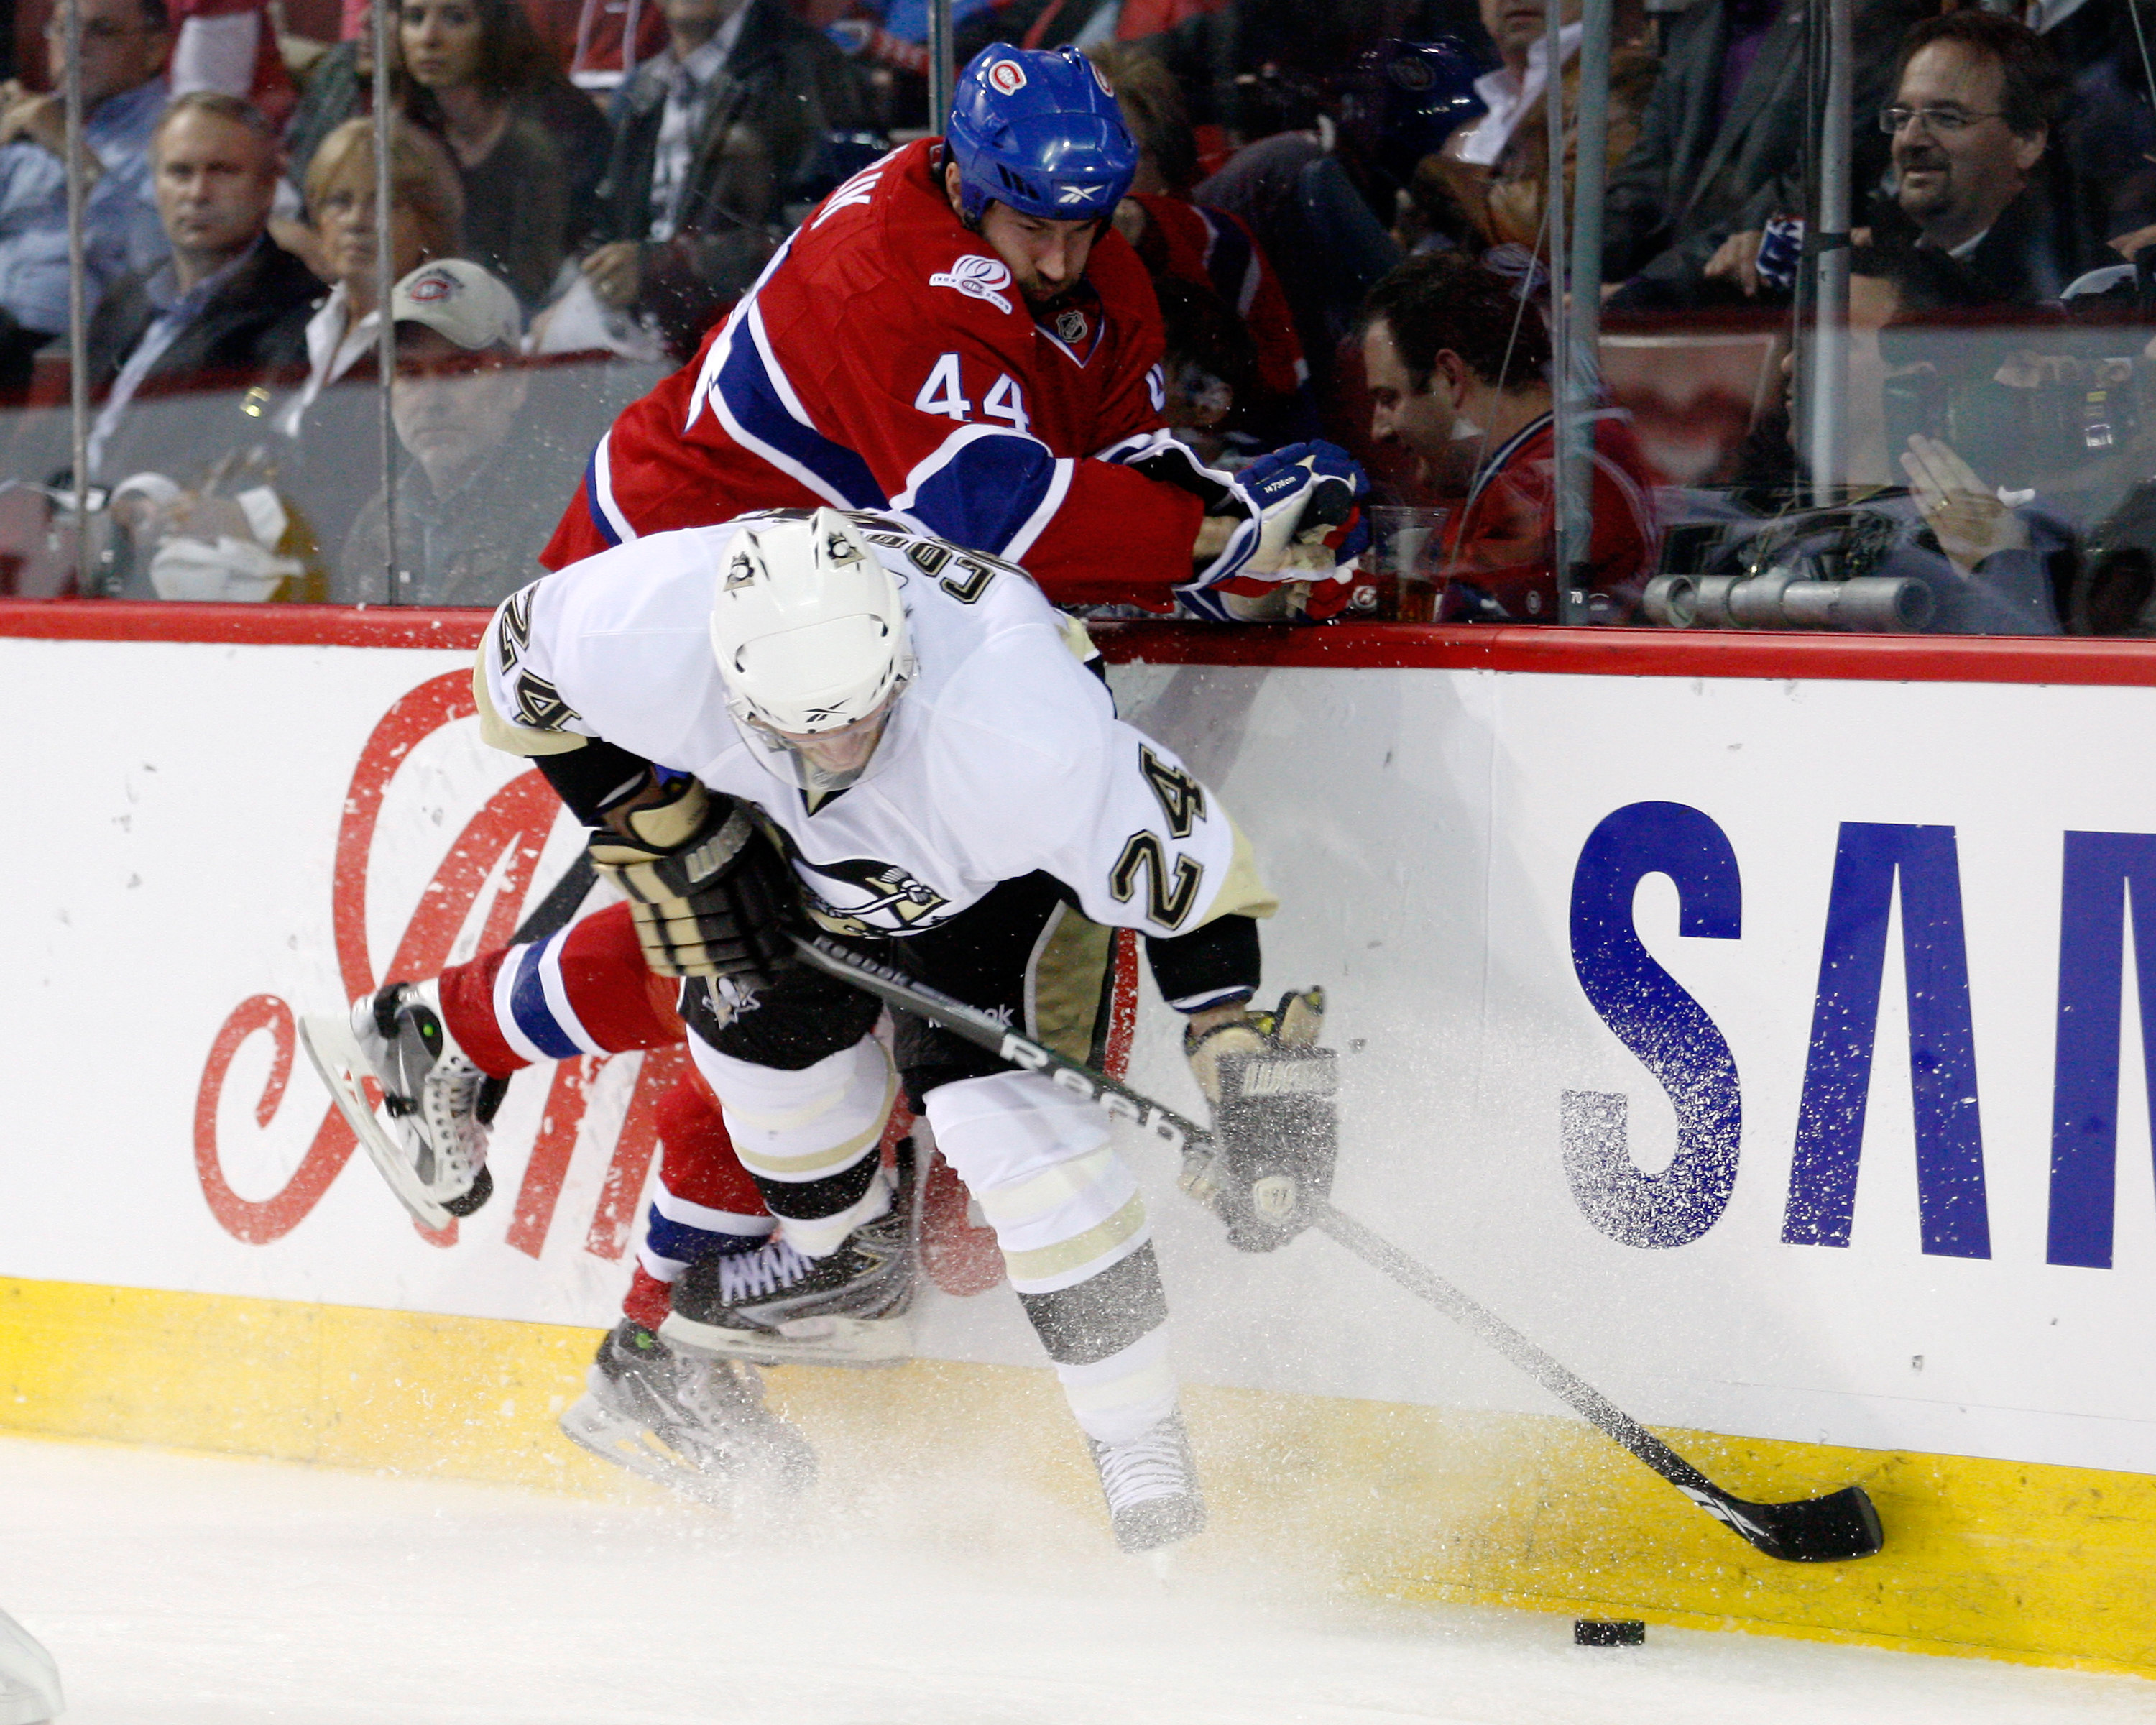 MONTREAL- MAY 10:  Roman Hamrlik #44 of the Montreal Canadiens body checks Matt Cooke #24 of the Pittsburgh Penguins in Game Six of the Eastern Conference Semifinals during the 2010 NHL Stanley Cup Playoffs at the Bell Centre on May 10, 2010 in Montreal,